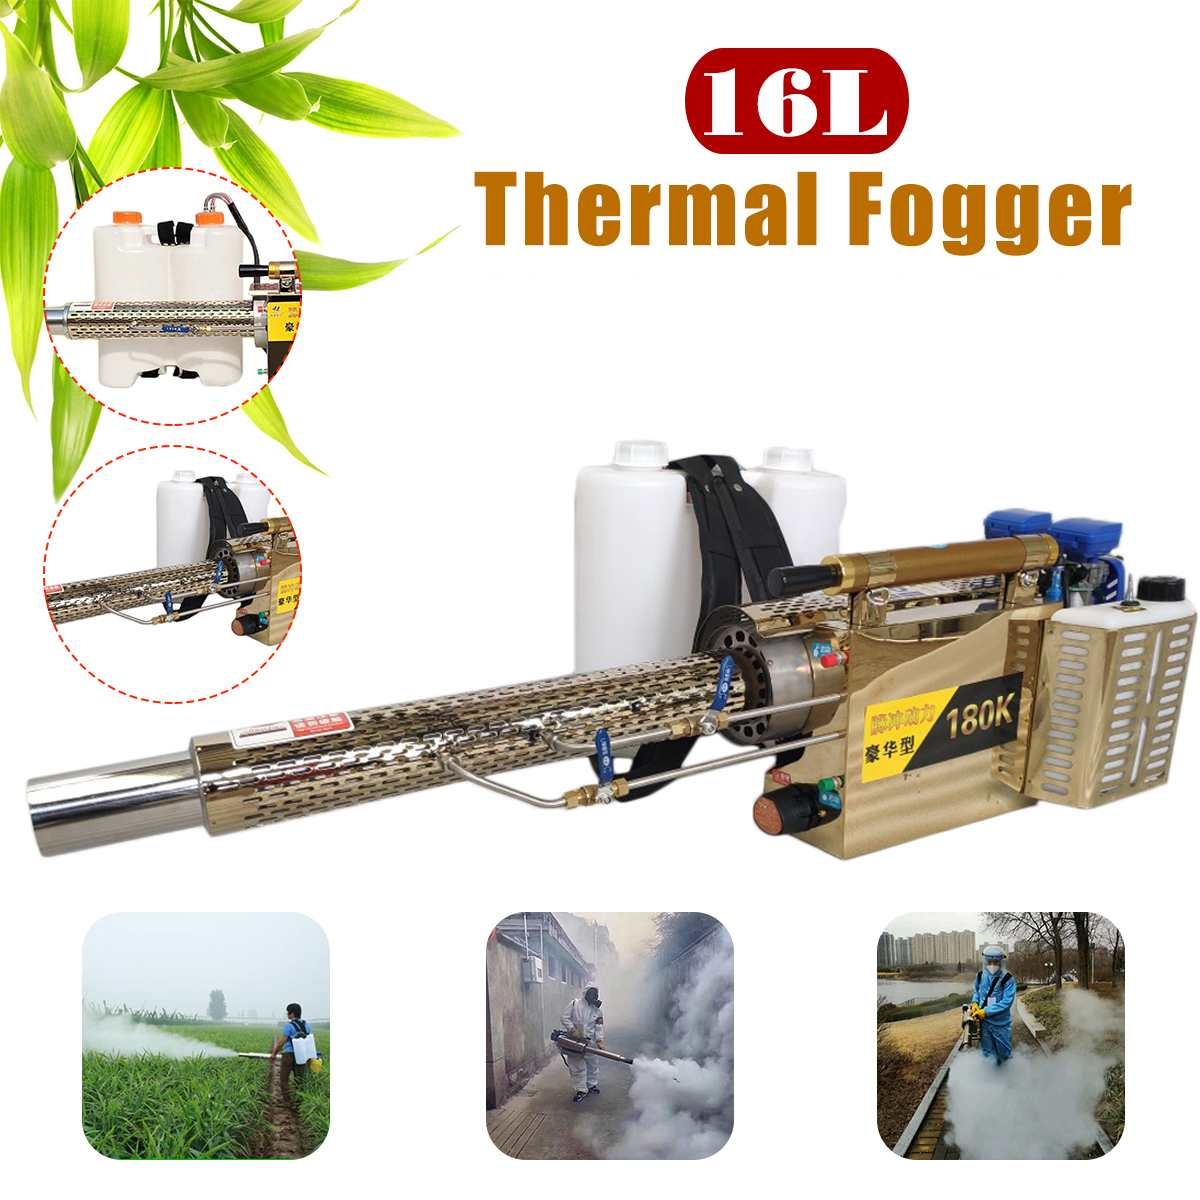 Upgraded 16L Portable Thermal Fogger Machine Disinfection Fogging Machine ULV Sprayer Nebulizer Term CE For Mosquito Pest Use